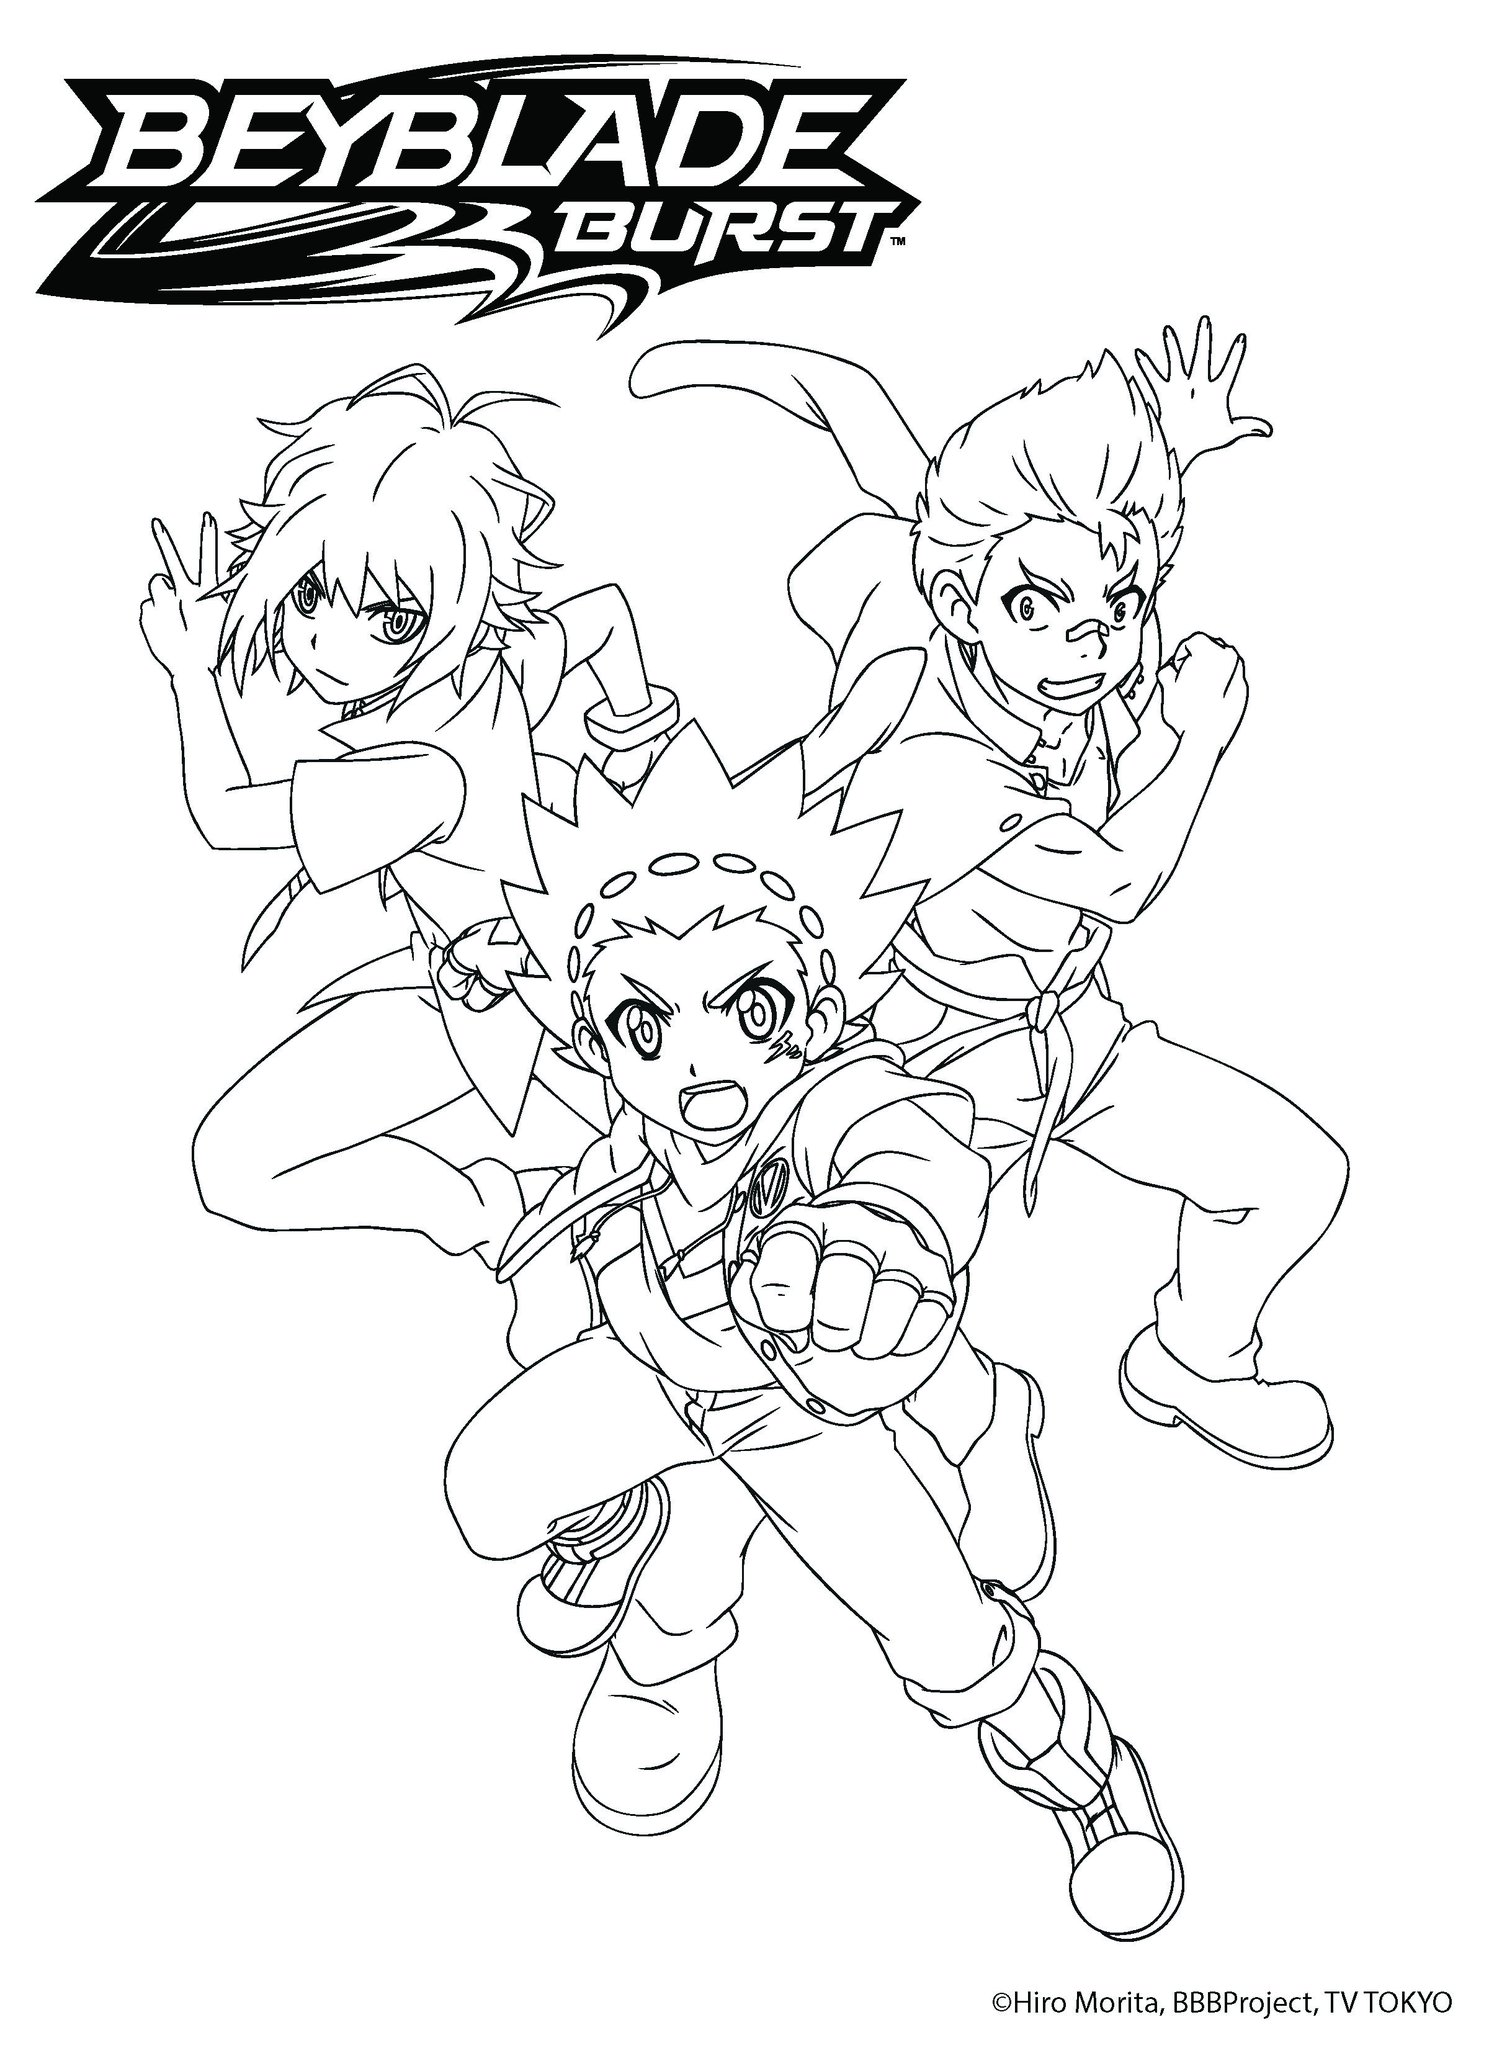 Beyblade Official on Twitter: